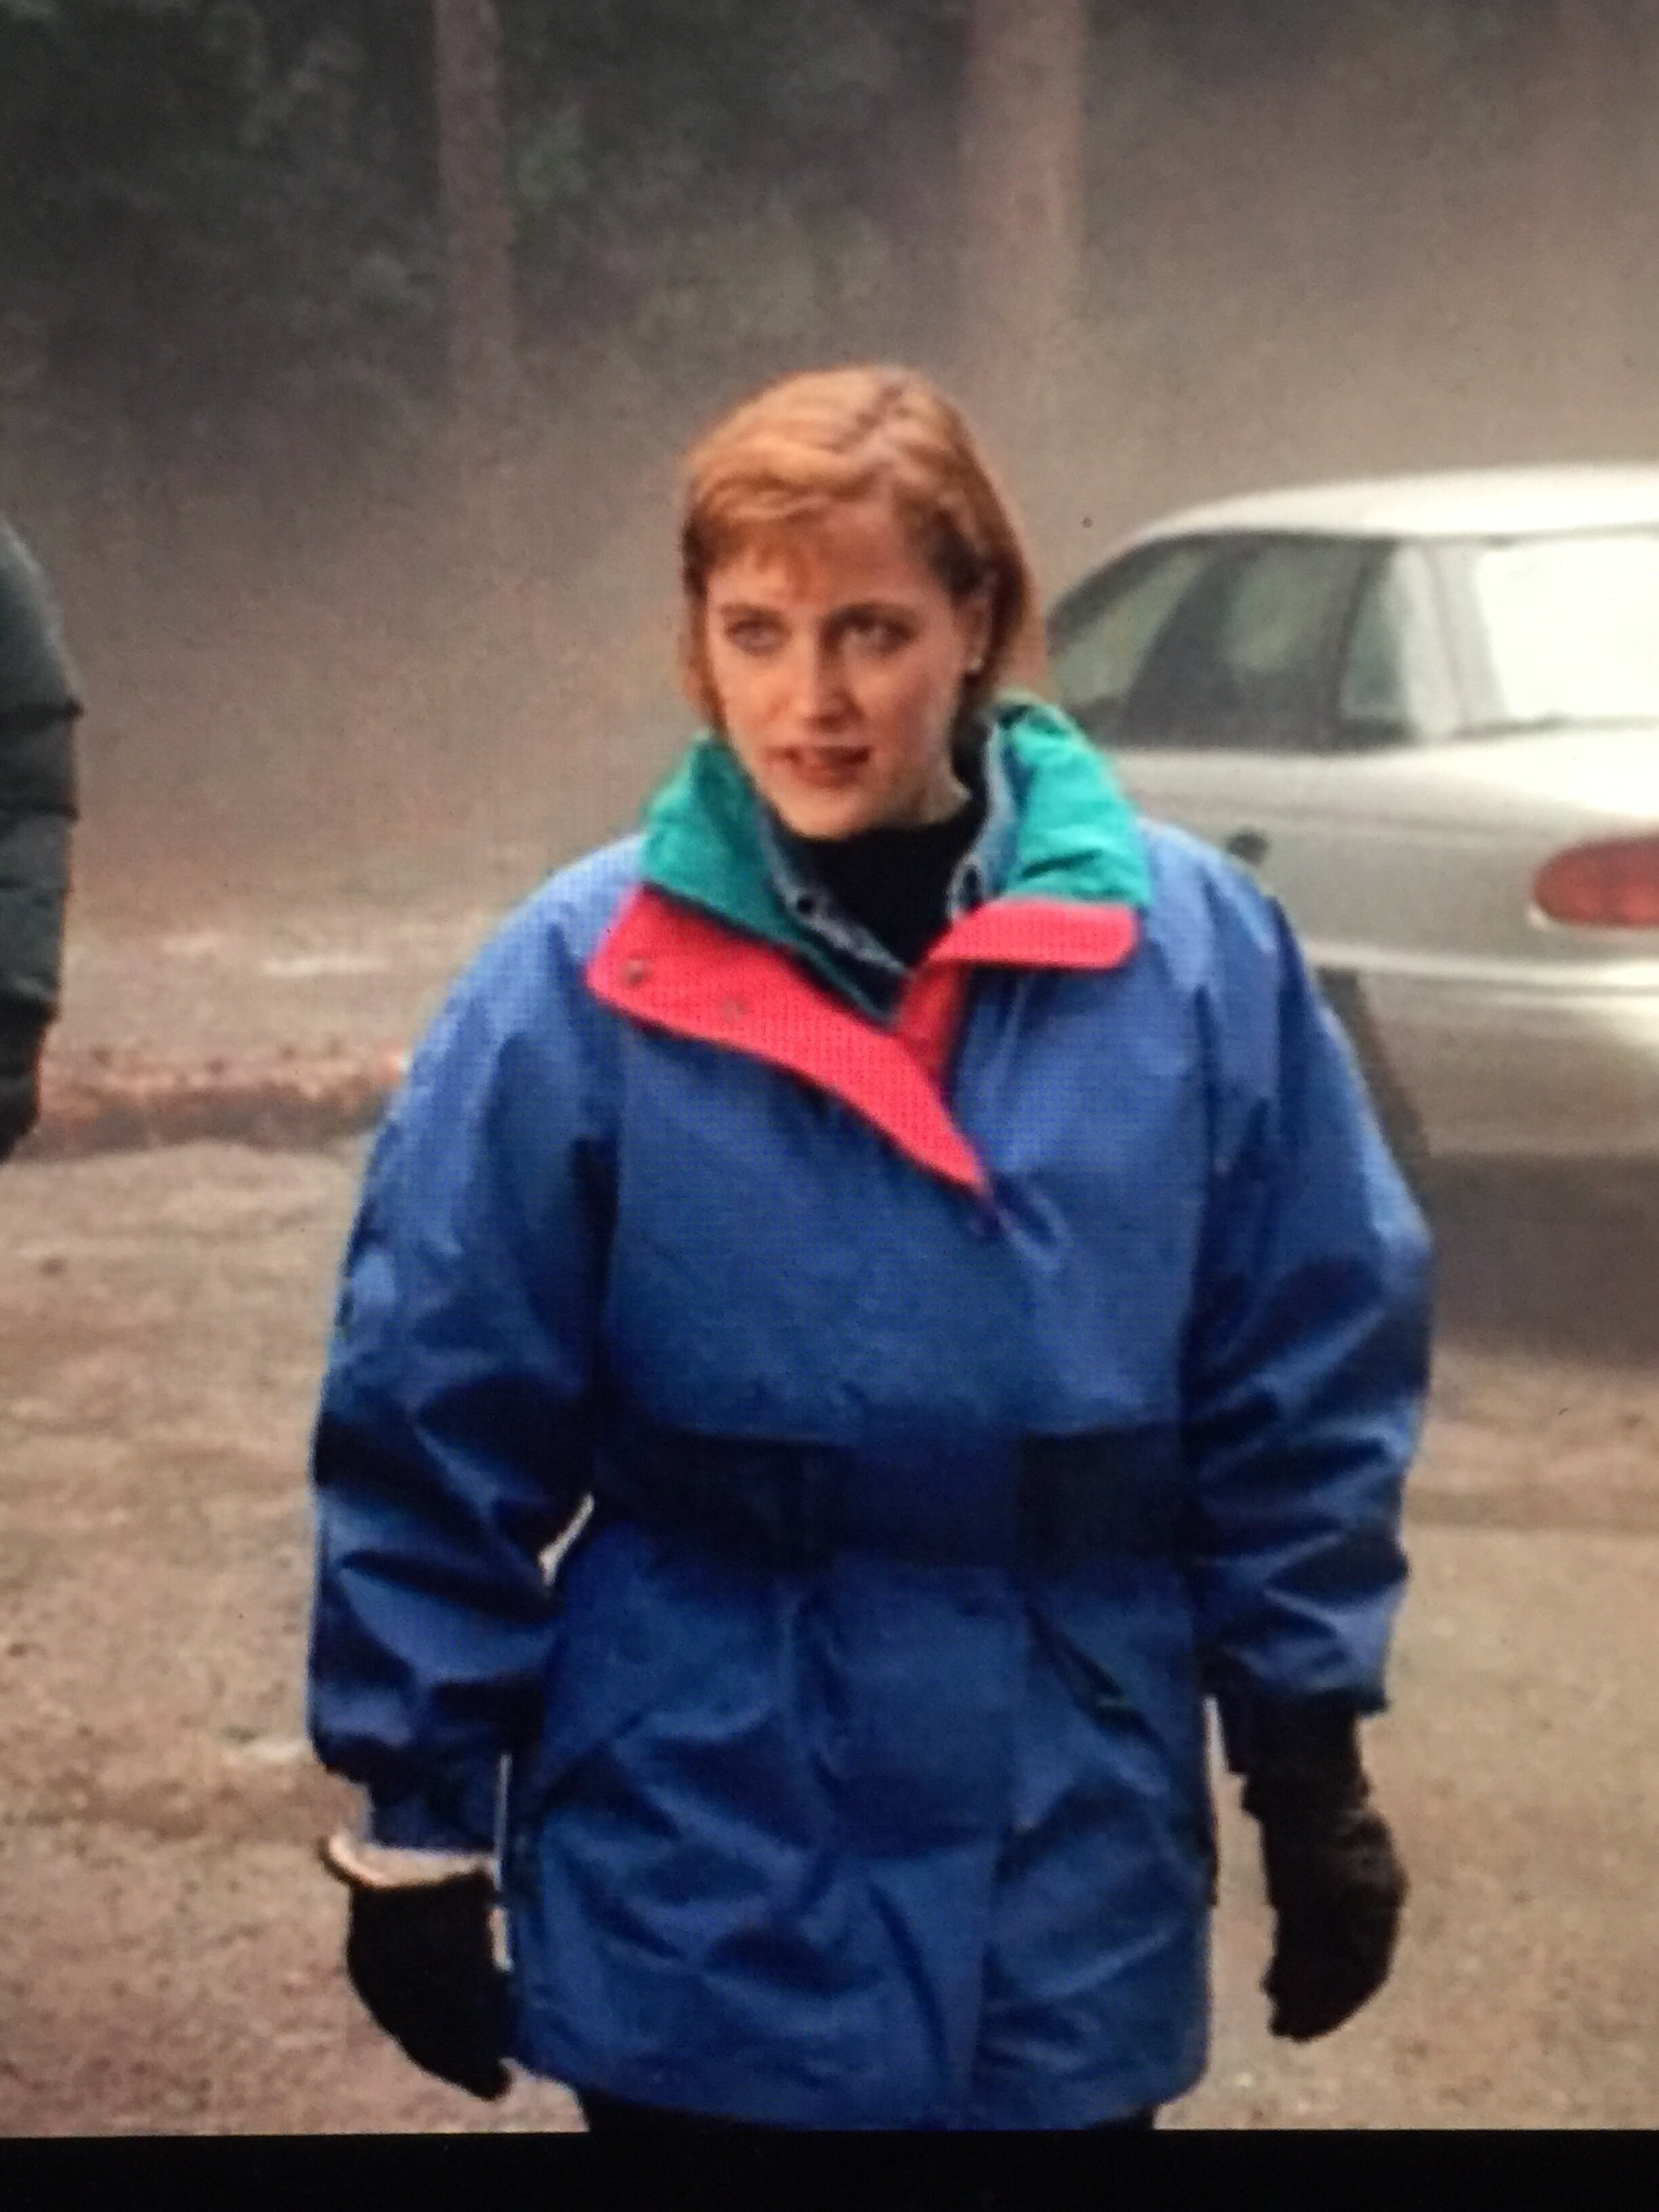 fig. 1, Scully's great rain jacket.